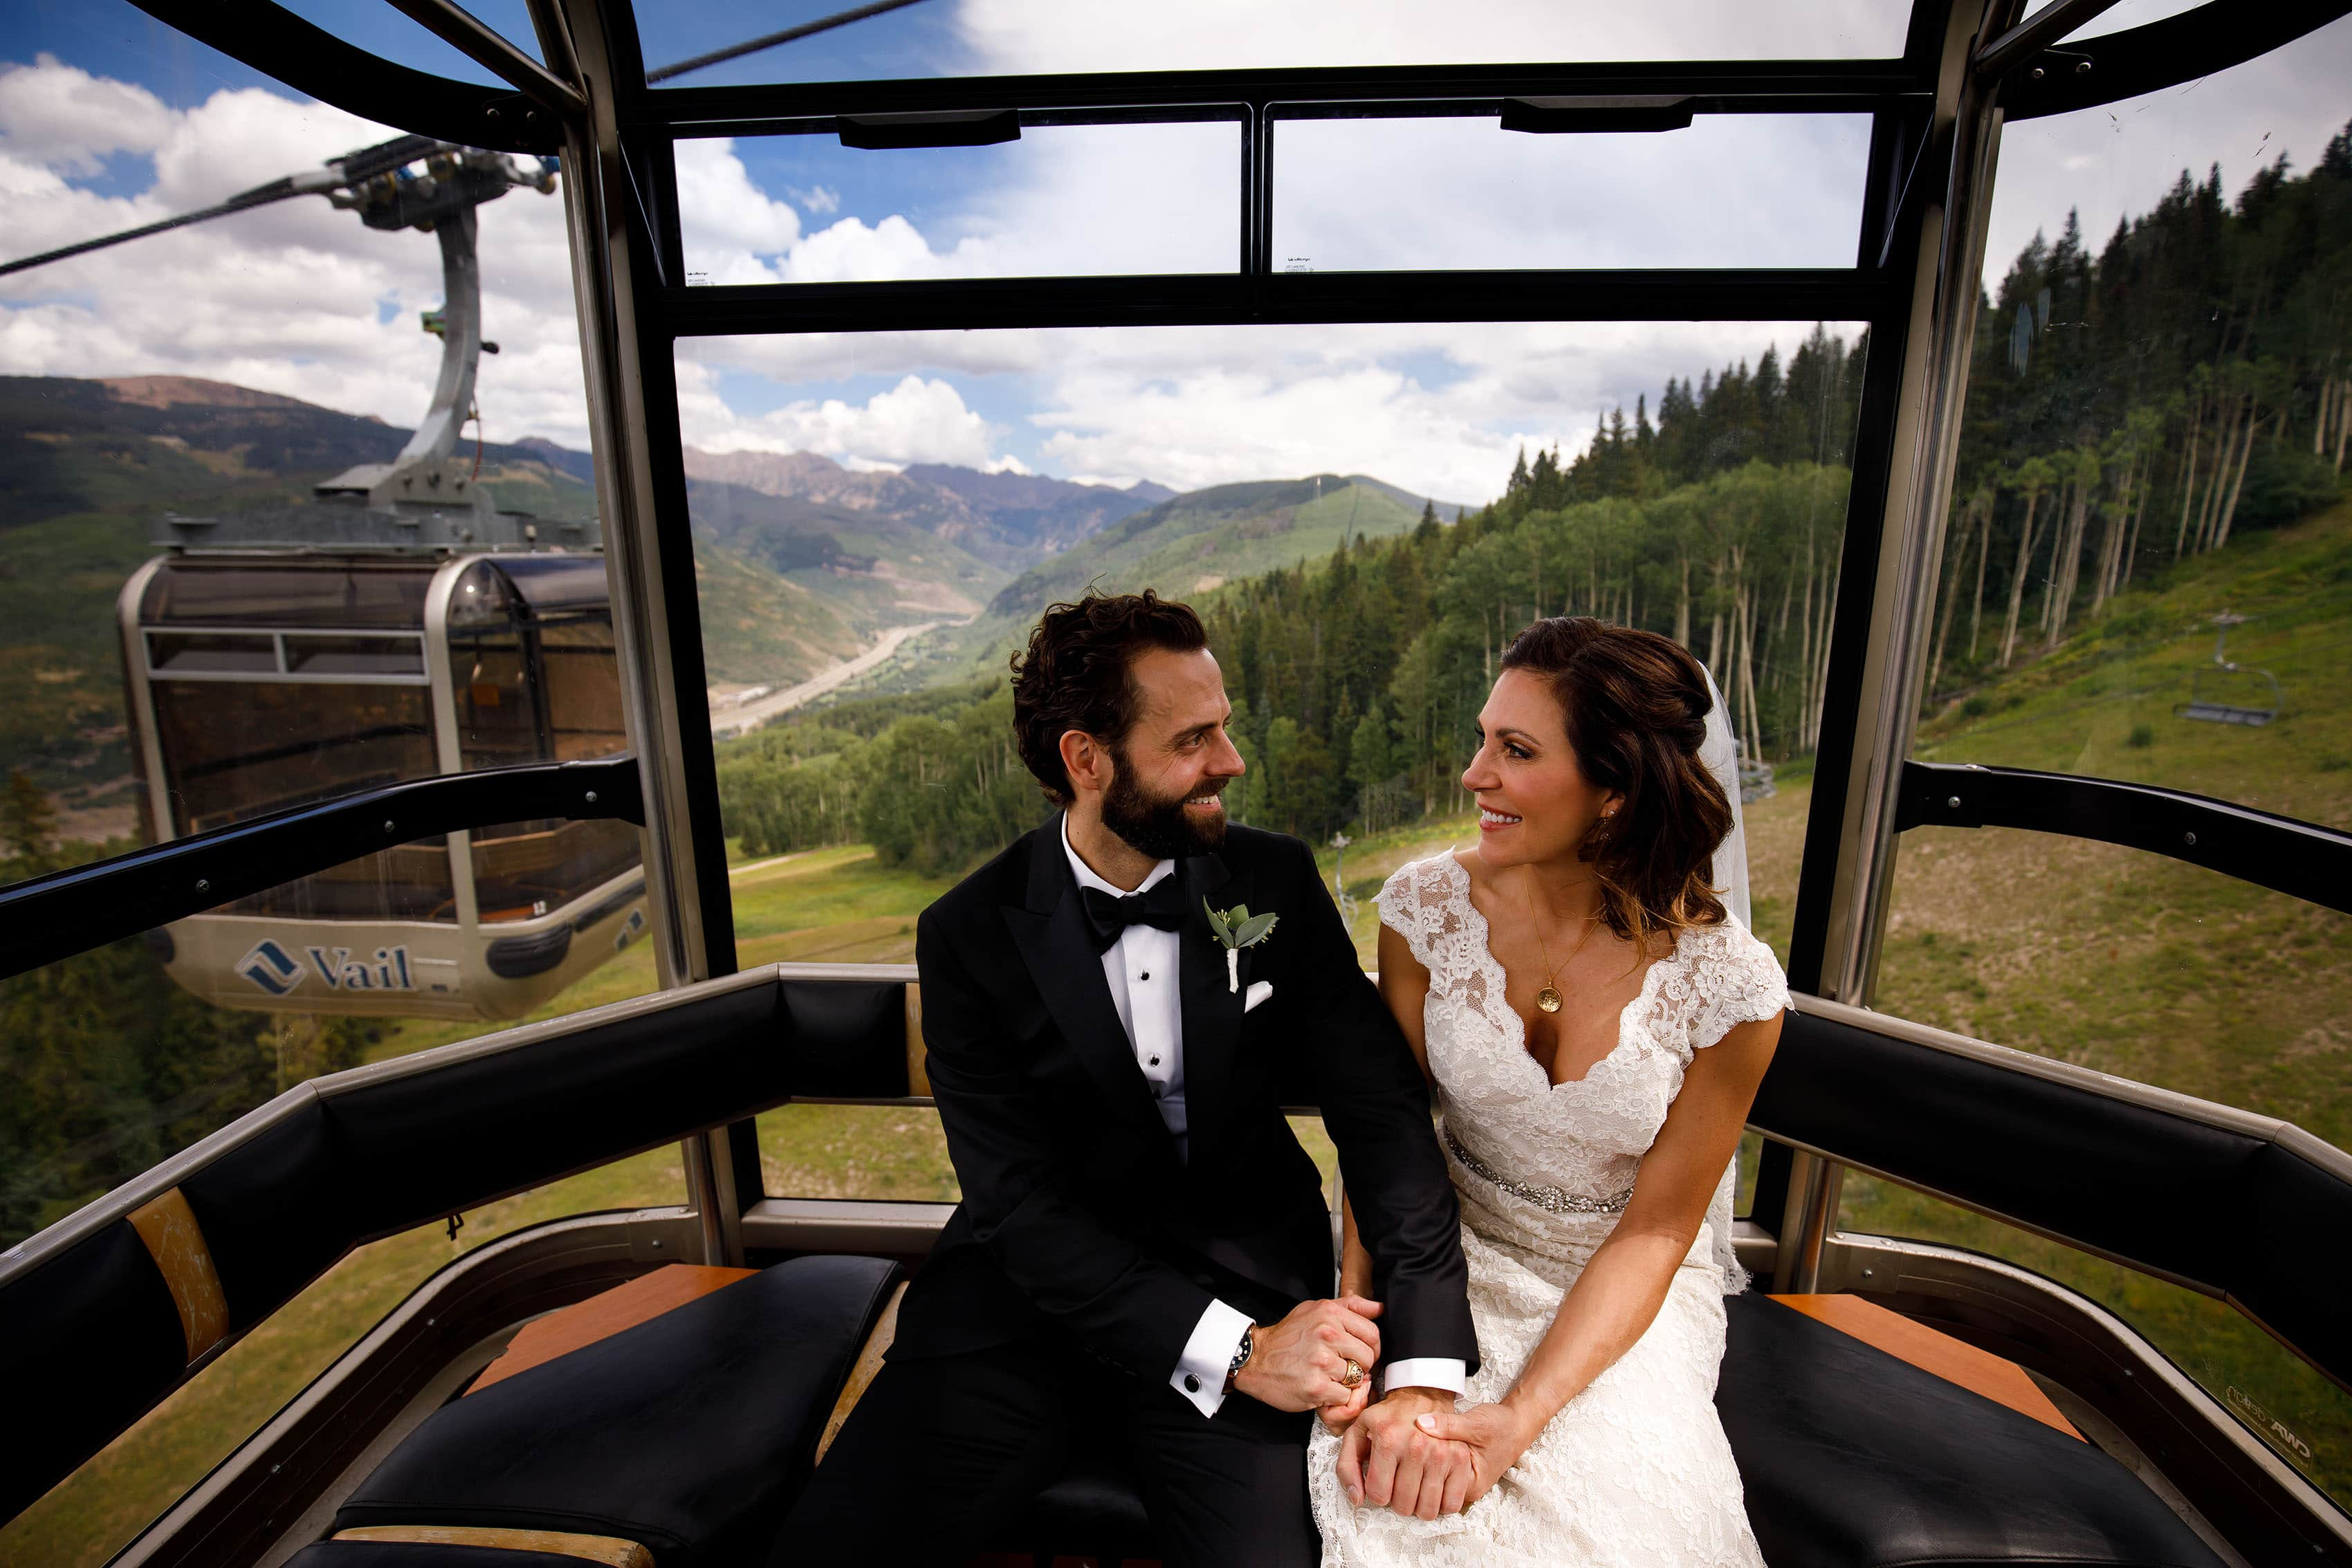 The couple ride the Lionshead gondola at Vail on their wedding day